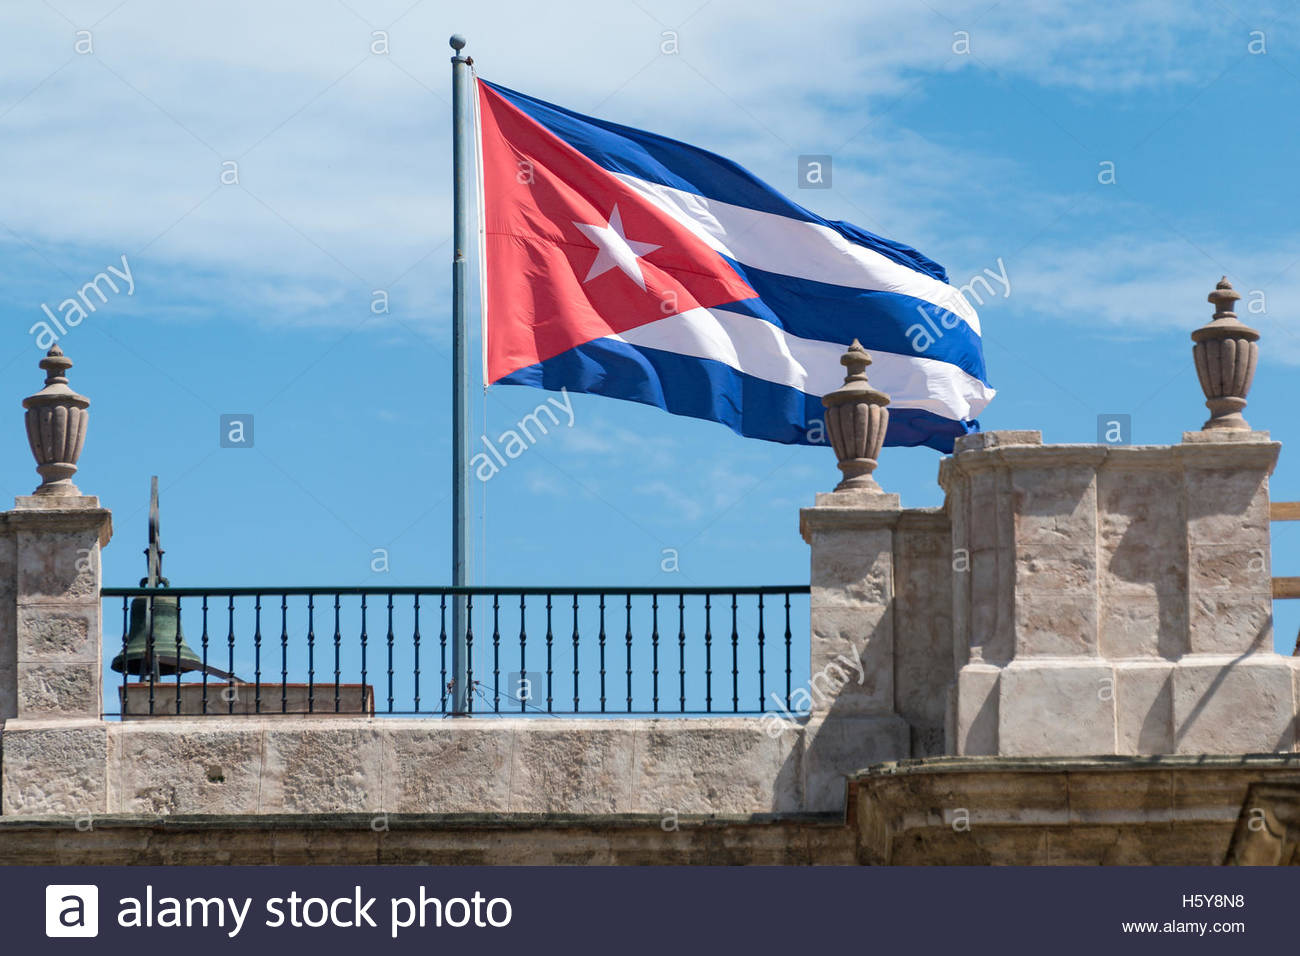 Cuban national flag on top of architecturally old building in Old Havana. - Stock Image